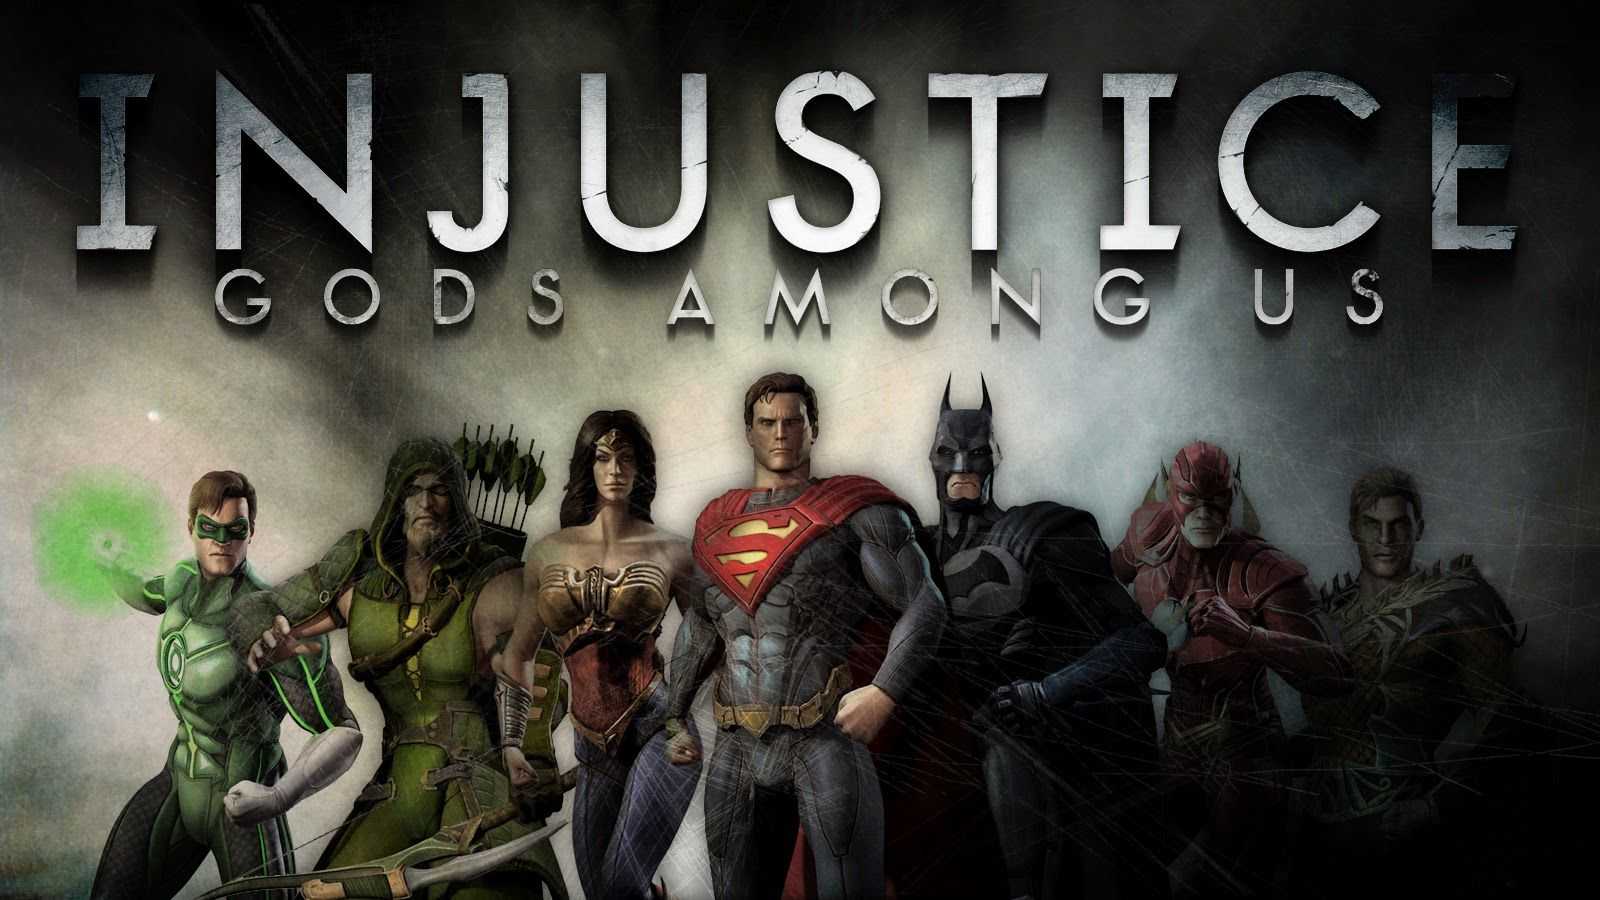 Tips Injustice Gods Among Us Hack Free Power Free Power Energy Unlock All Characters And Unlock All Special Costume Android Hacks Ios Games Hack Free Money